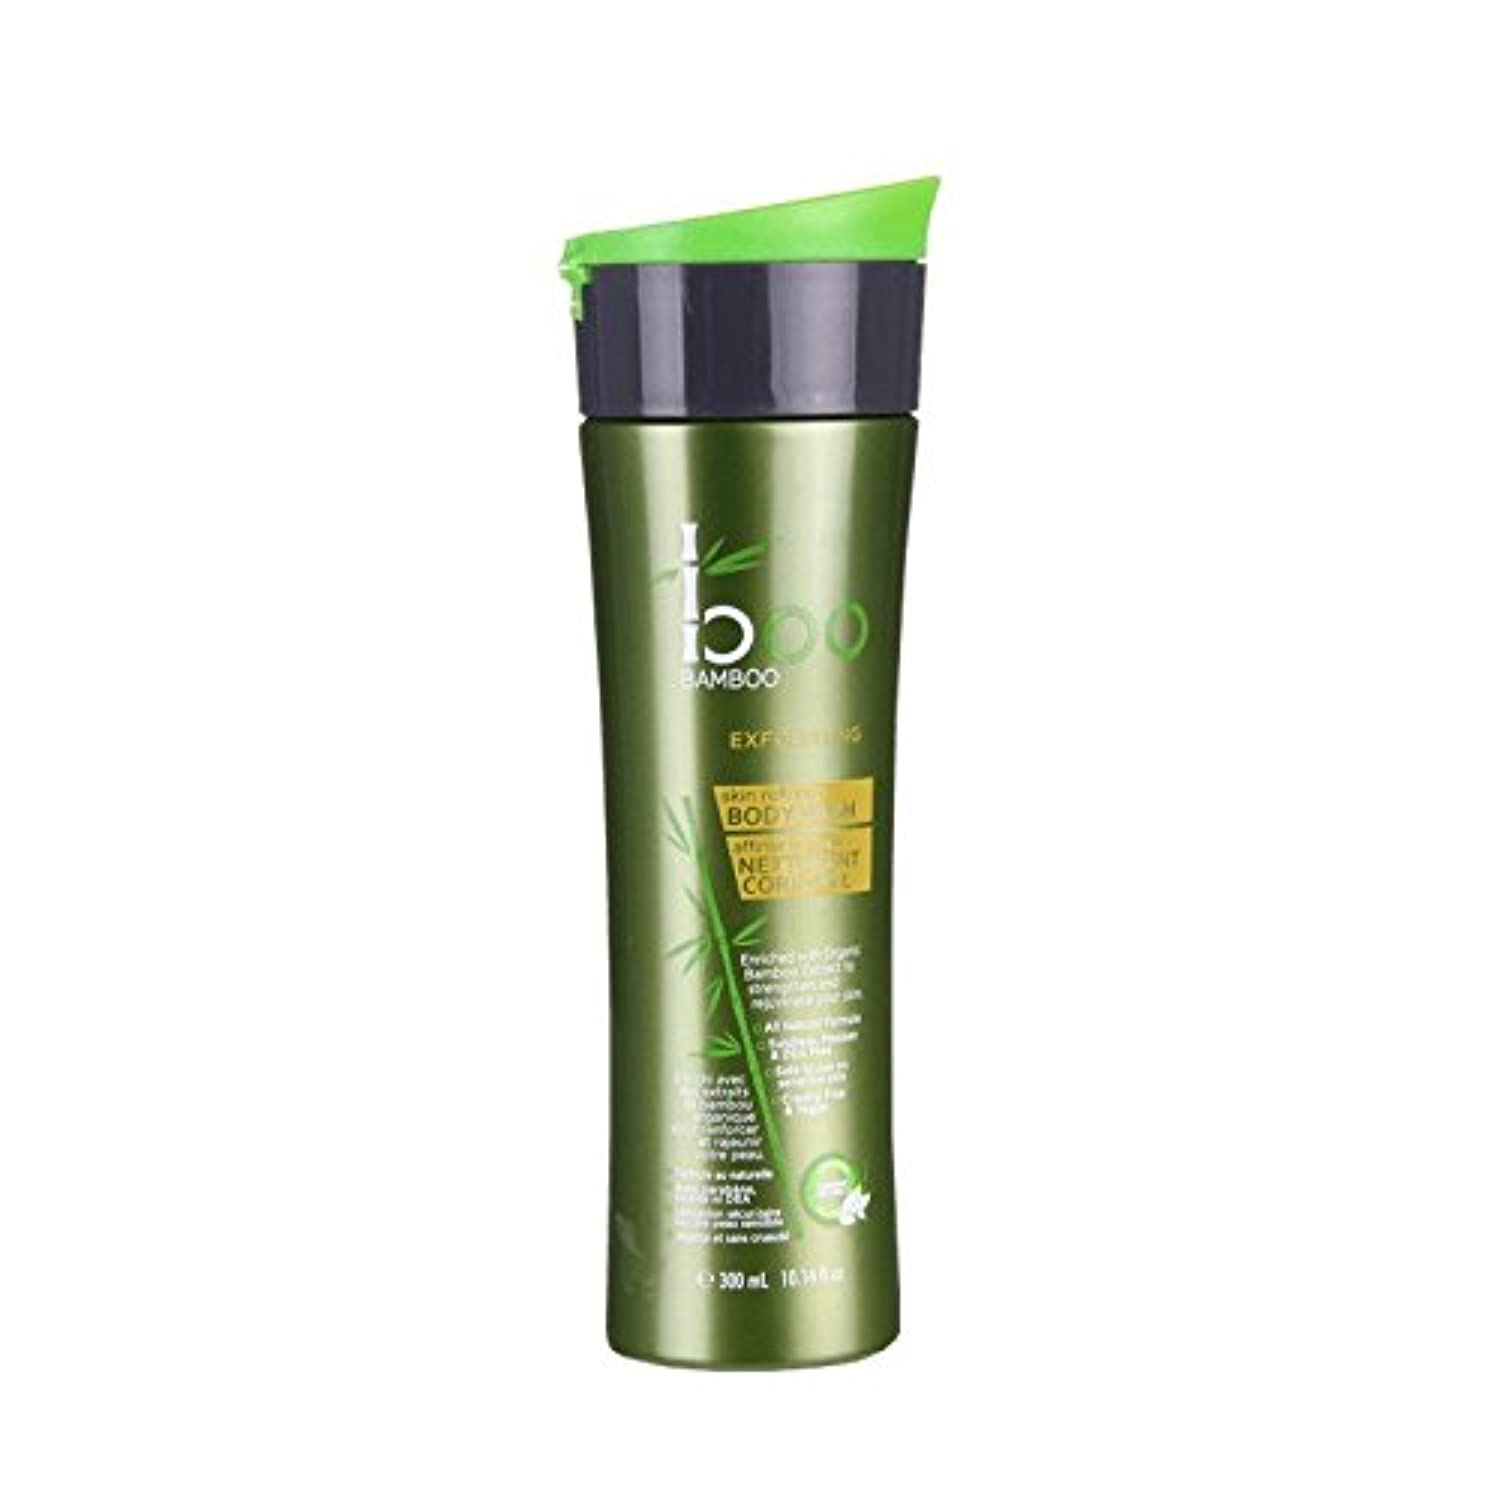 Boo Bamboo Exfoliating Body Wash 300ml (Pack of 6) - 竹ピーリングボディウォッシュ300ミリリットルブーイング (x6) [並行輸入品]